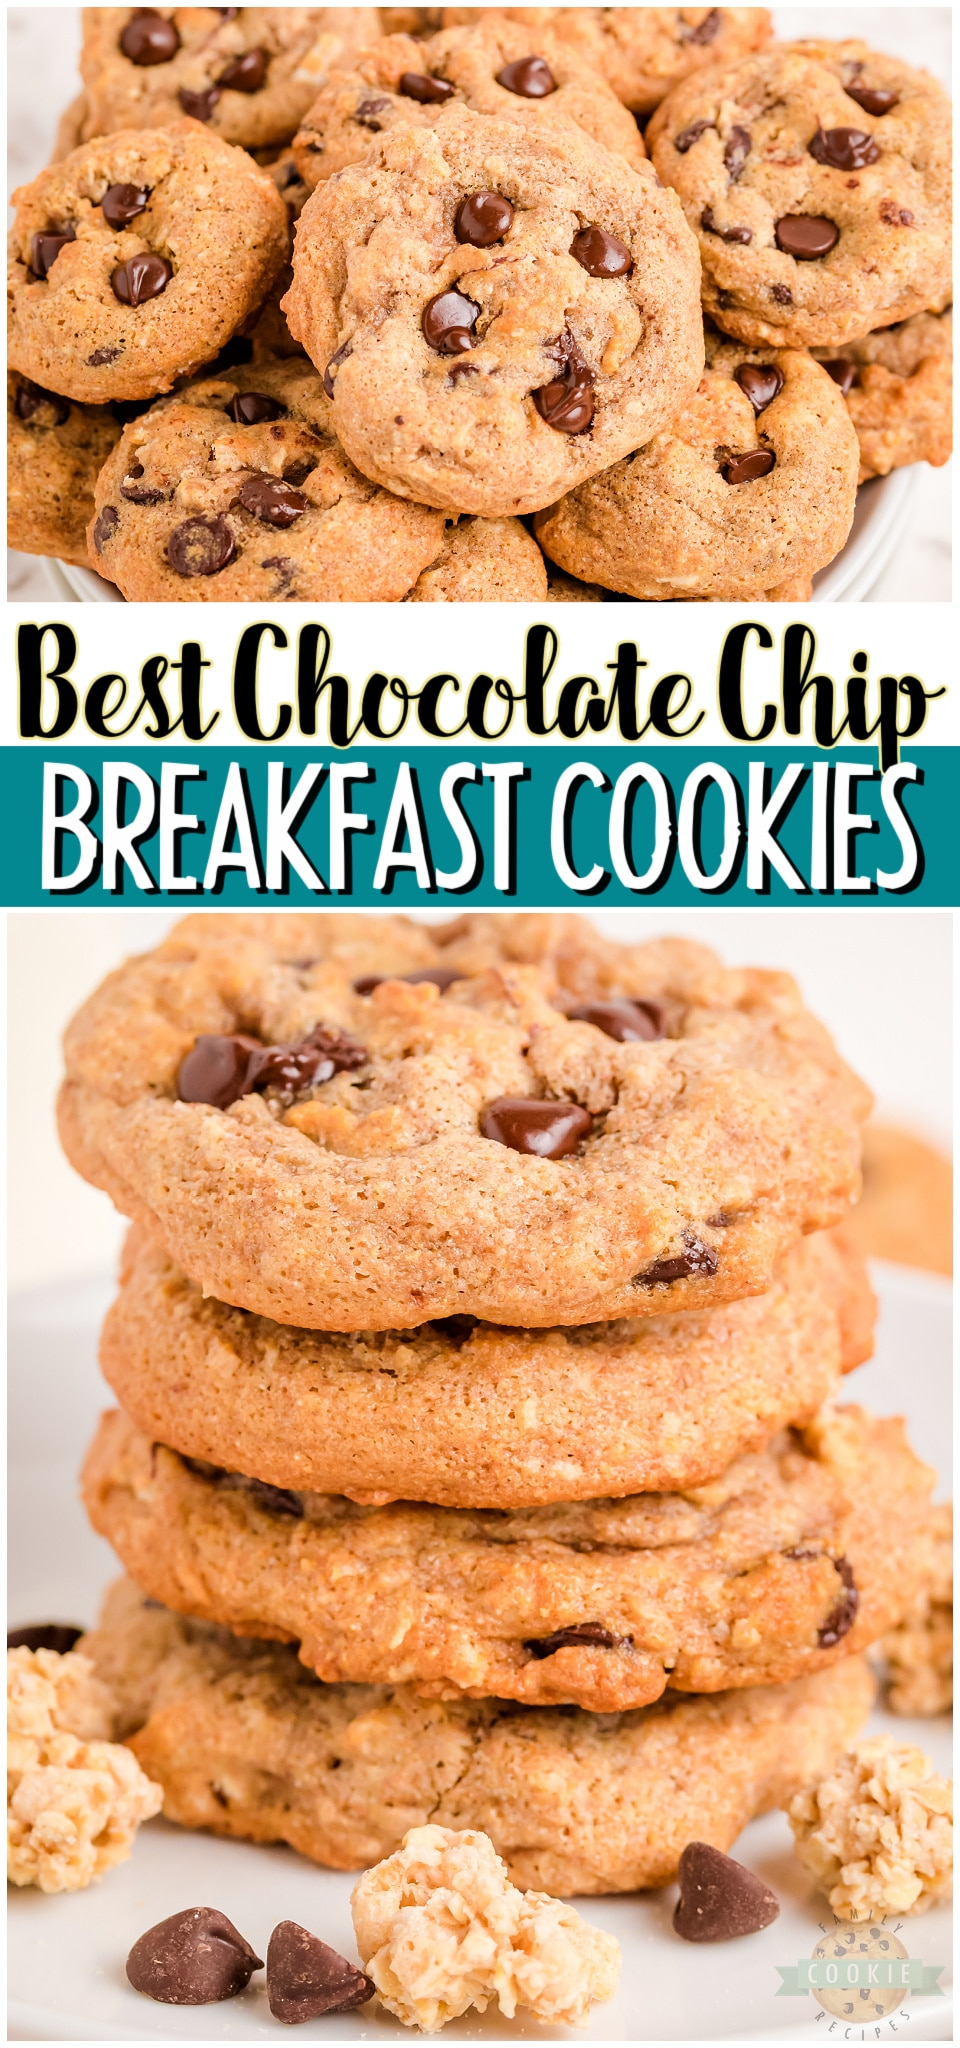 Breakfast chocolate chip cookies are a perfect snack that you can feel good about. Whole wheat flour, applesauce, granola, & dark chocolate combine to make tasty low-calorie & low sugar cookies!